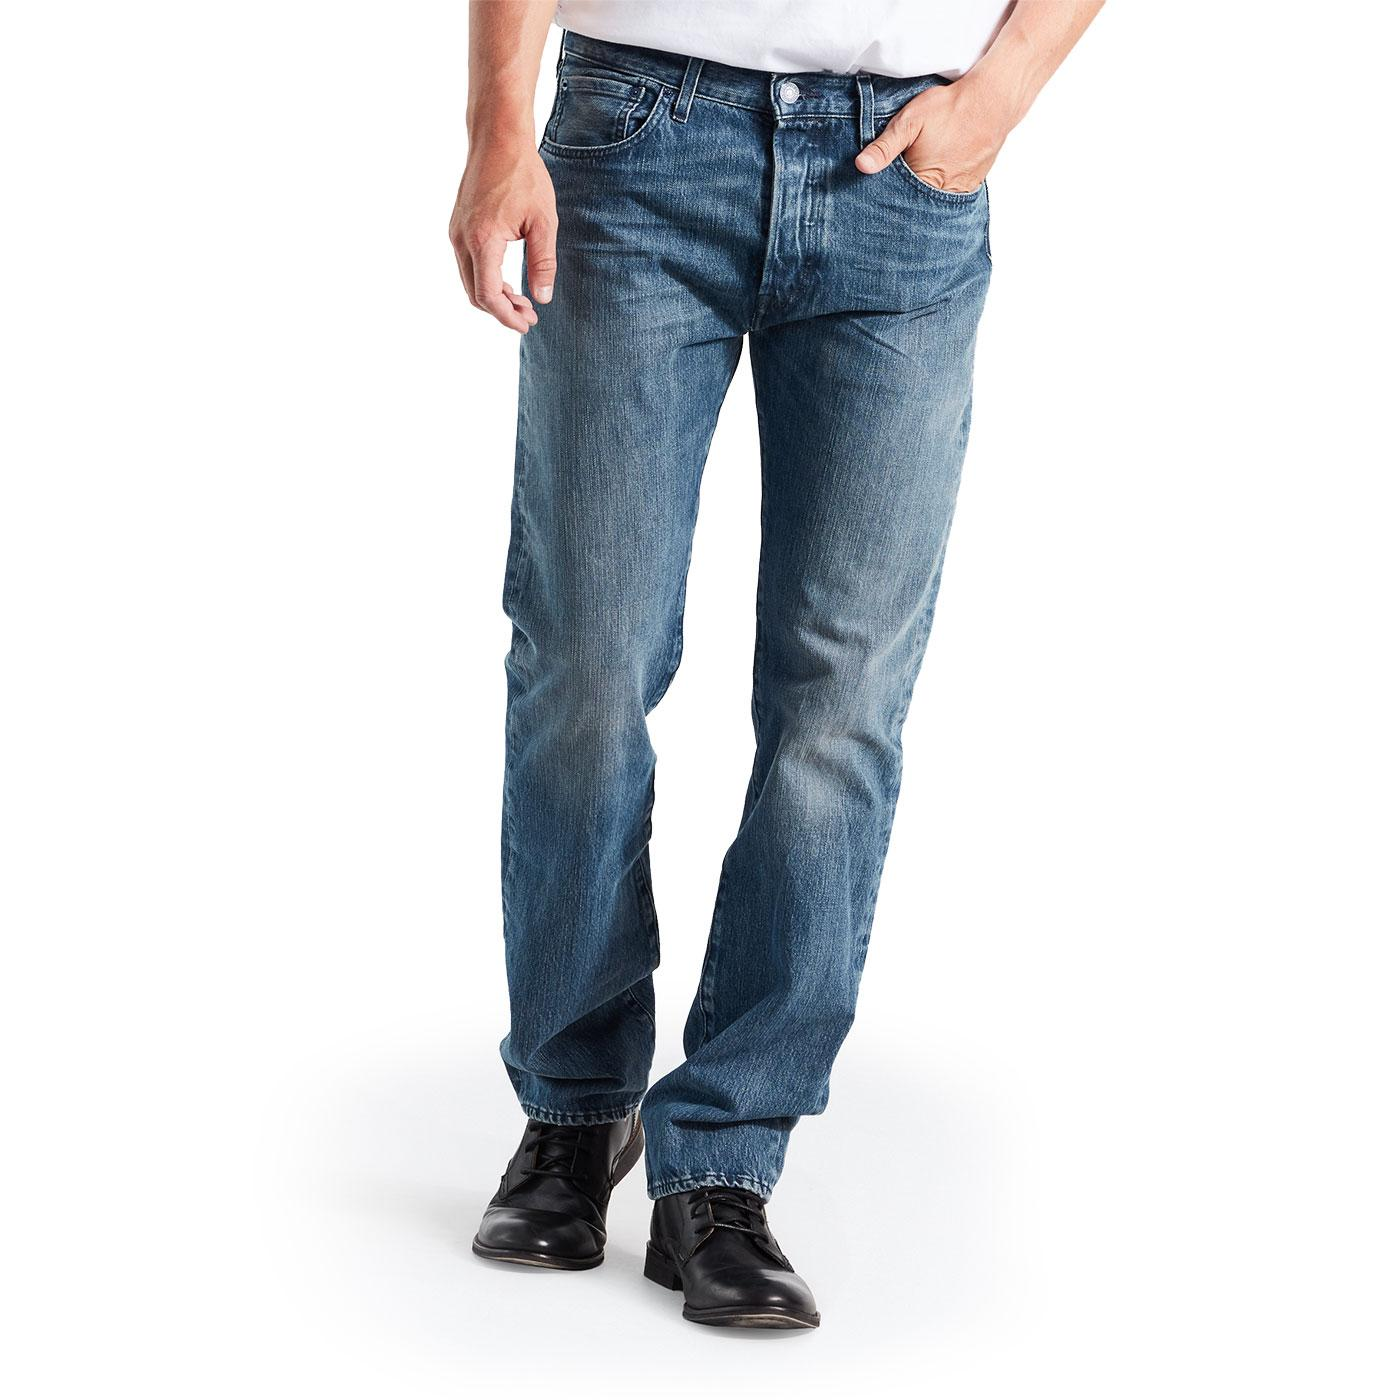 LEVI'S 501 Men's Original Fit Denim Jeans (Tissue)